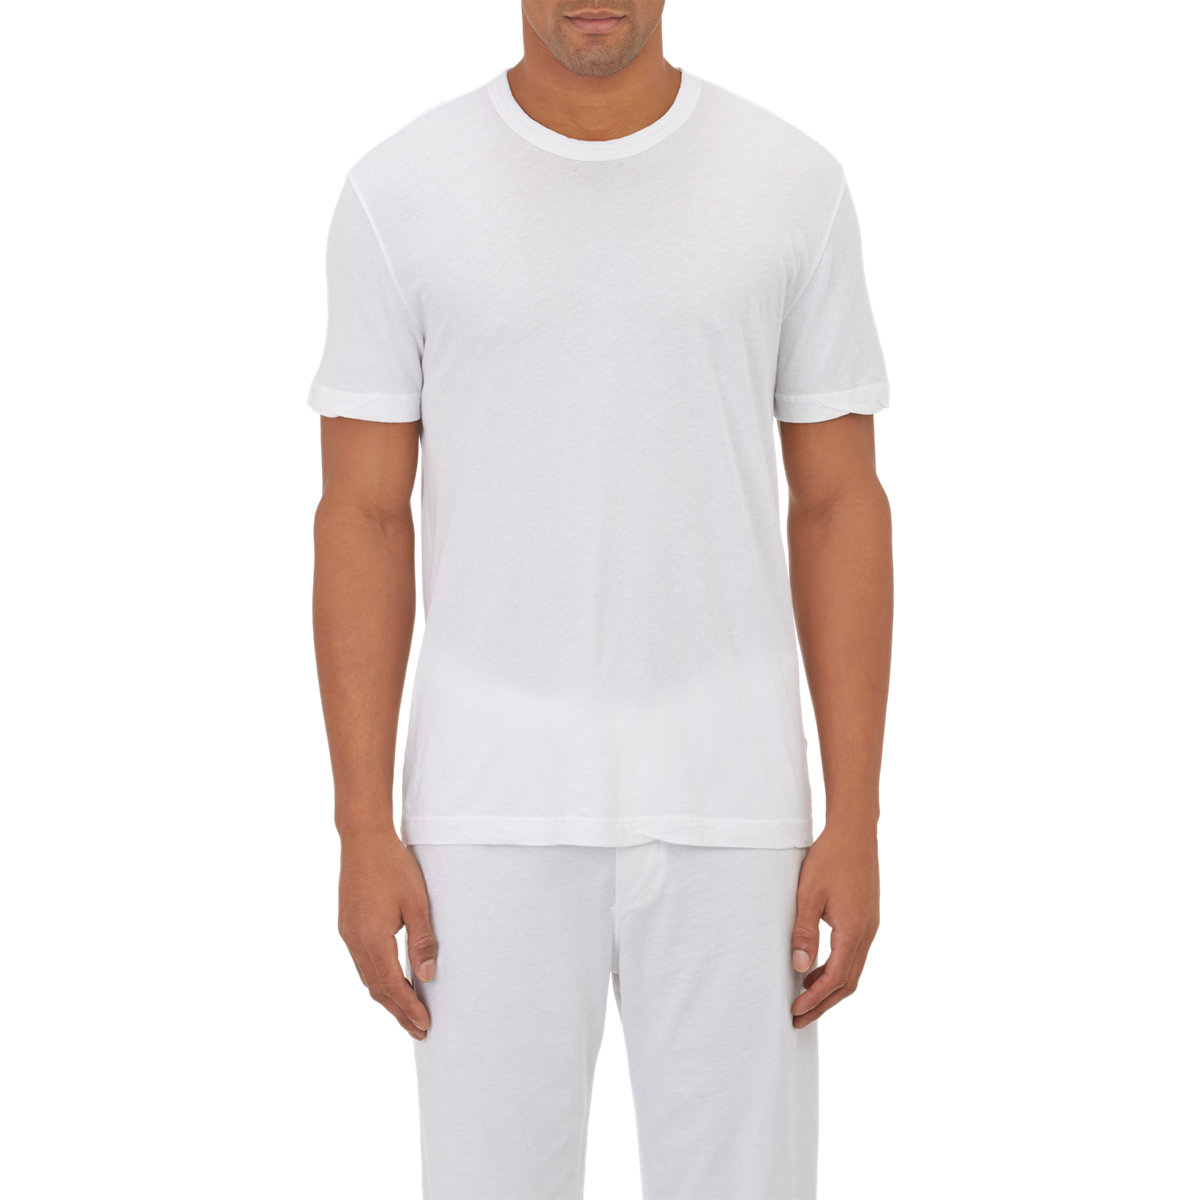 James perse basic crewneck t shirt in white for men lyst for James perse t shirts sale